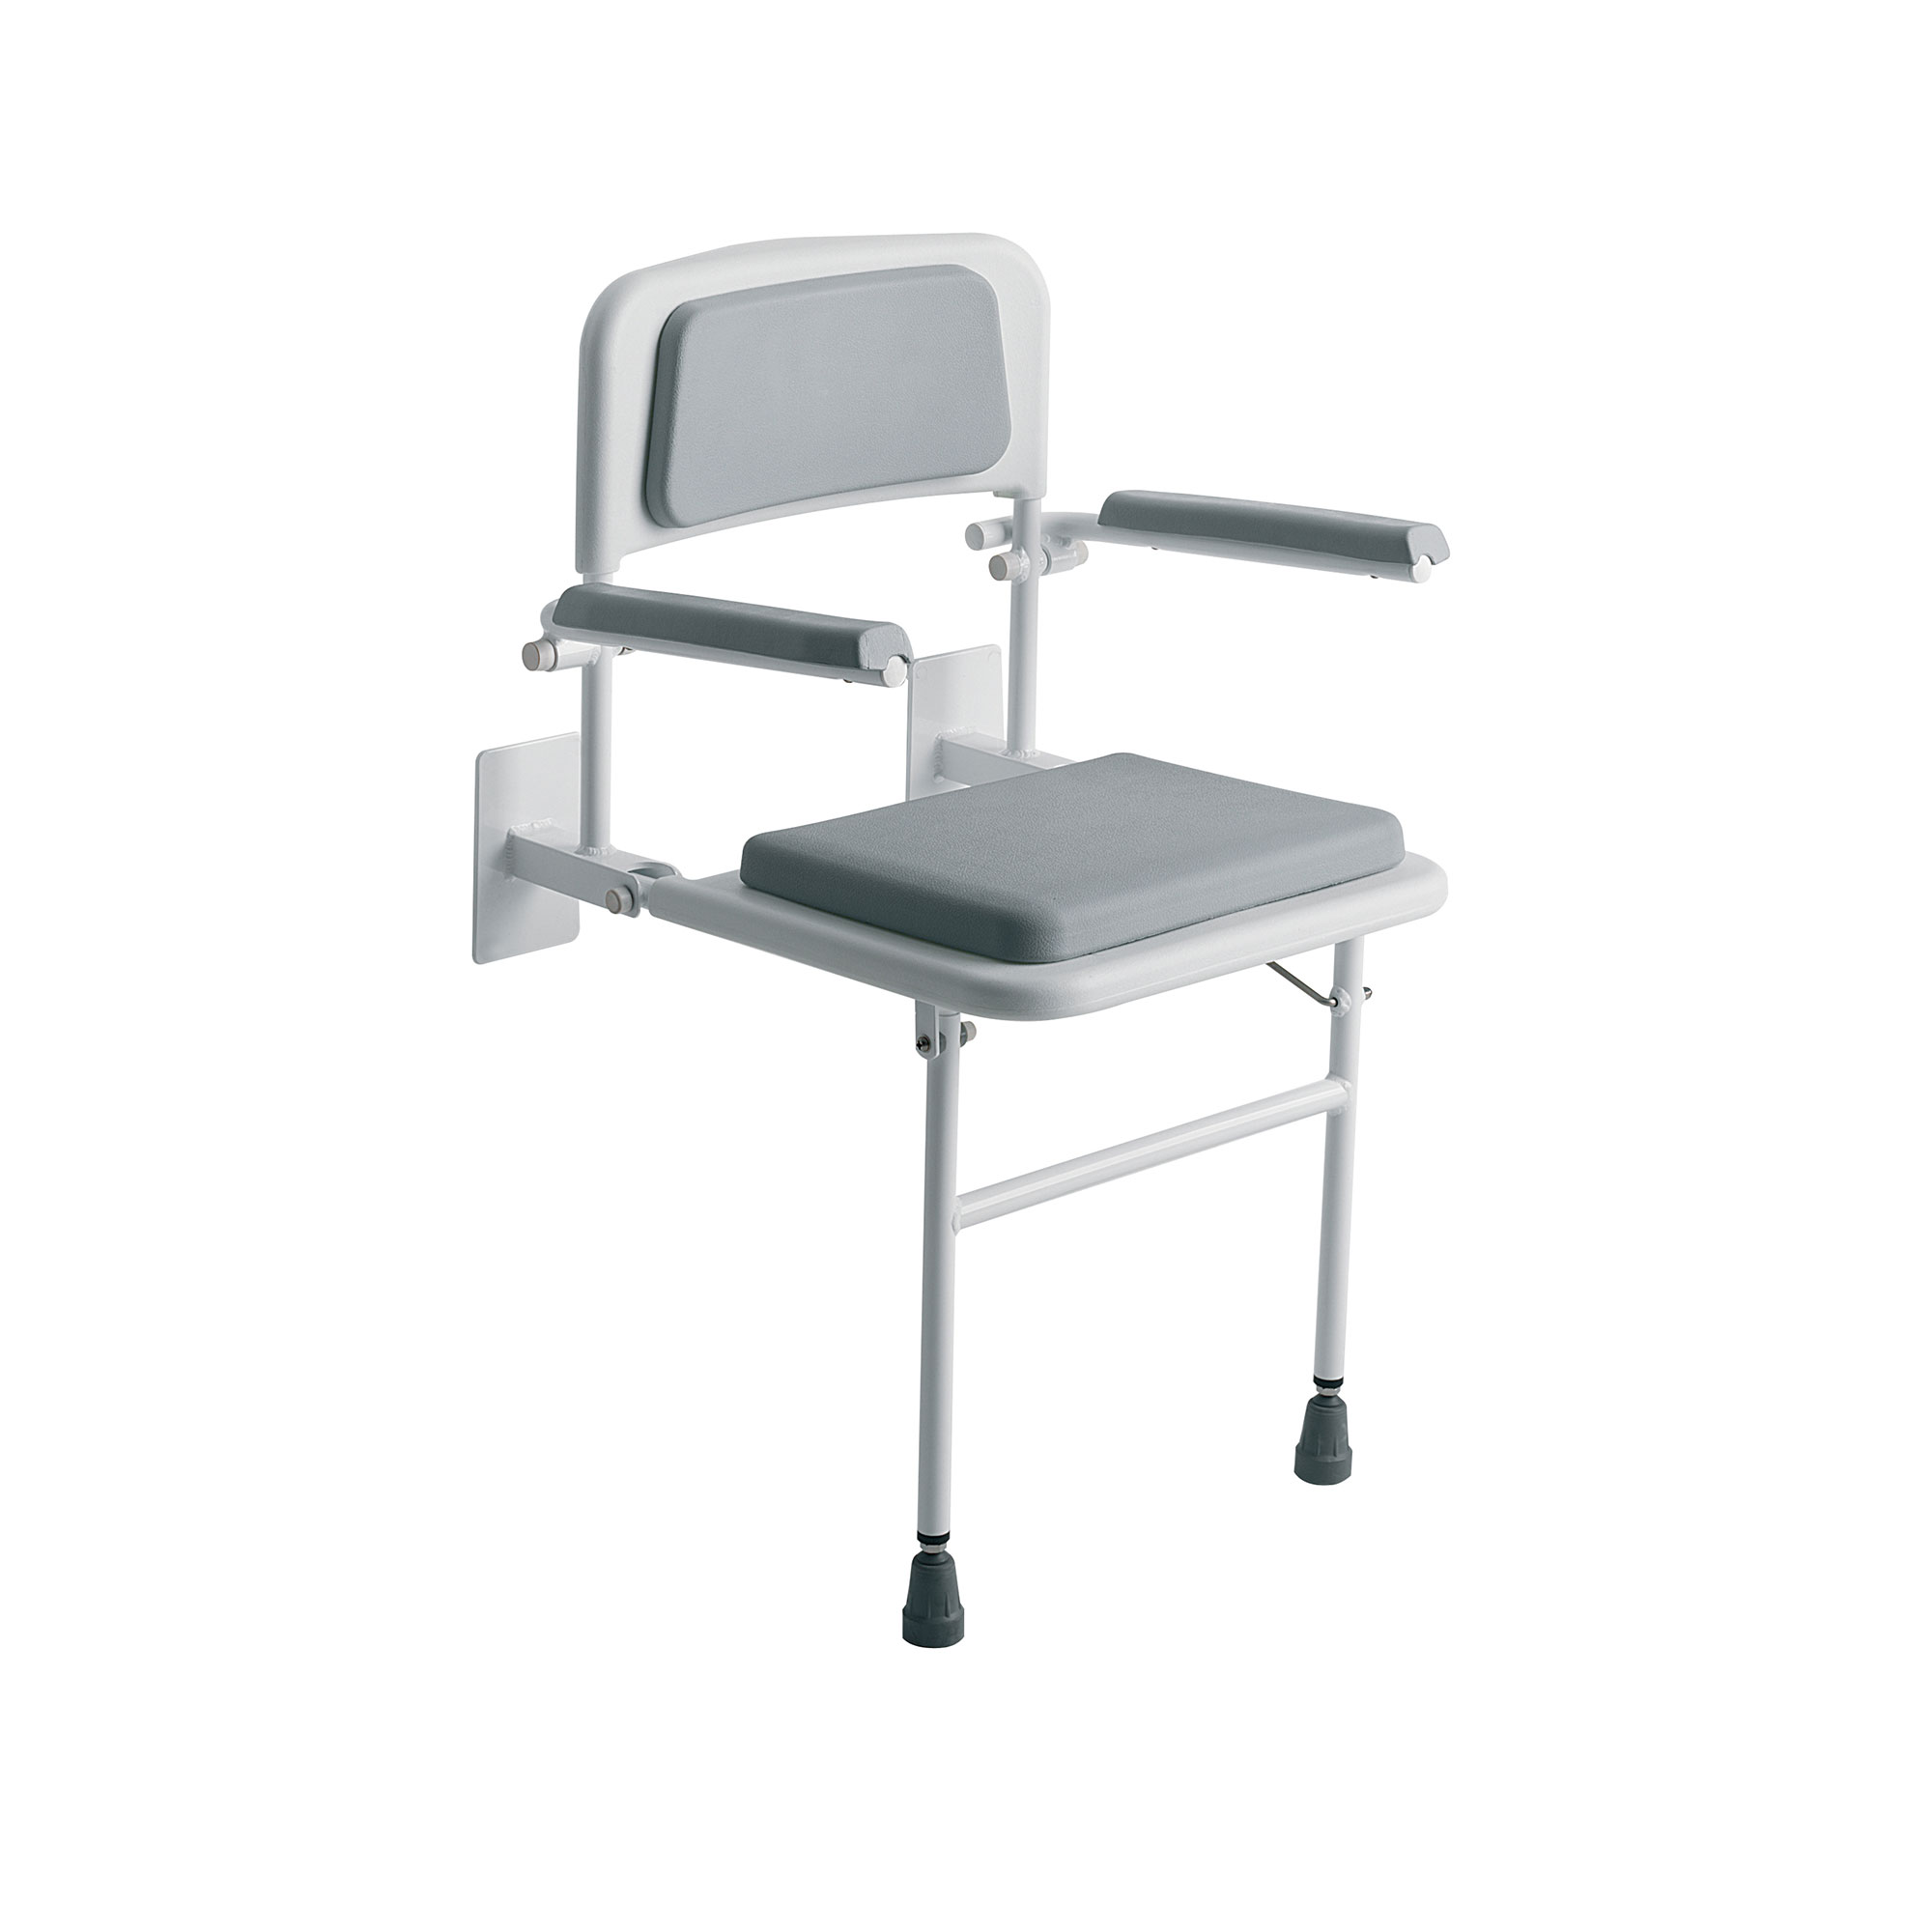 Shower Chairs & Seats Roma Medical